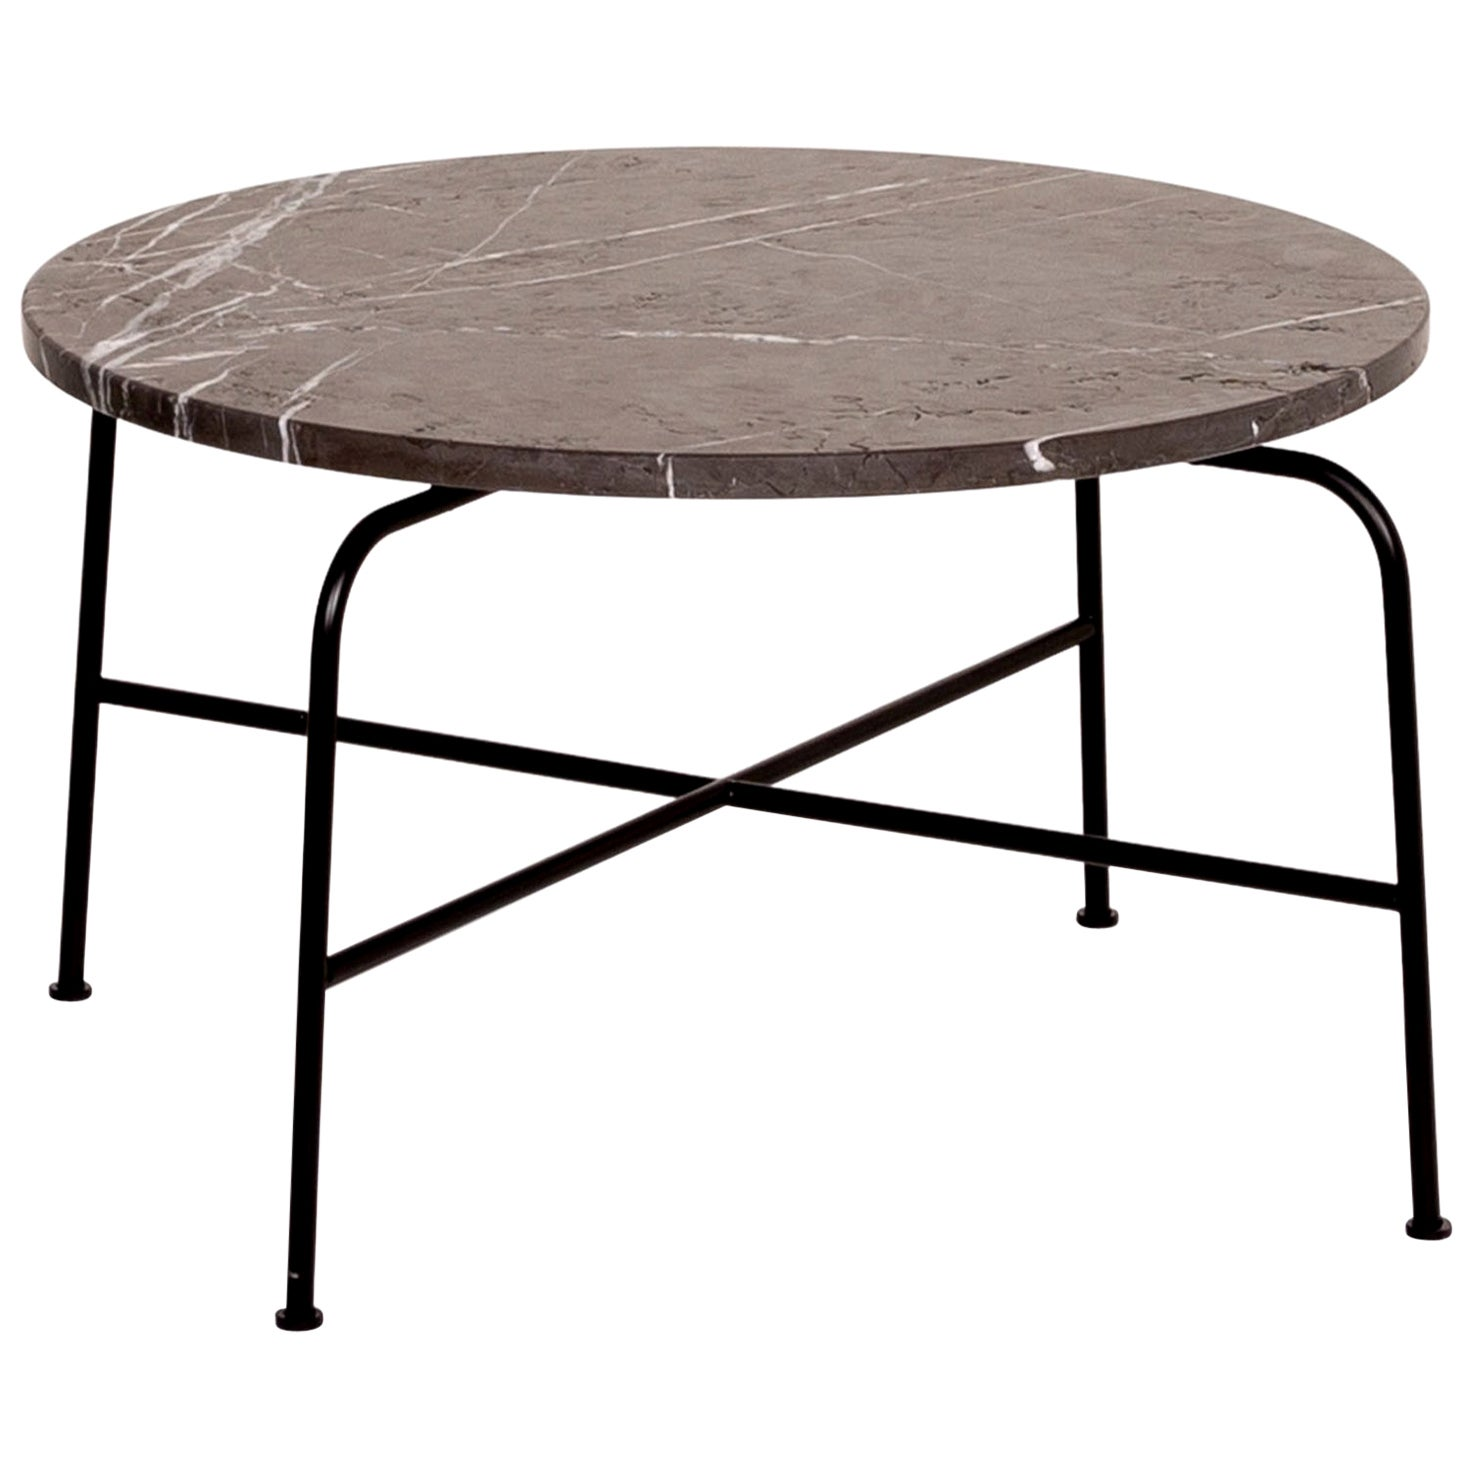 Rolf Benz 947 Graphite Coffee Table Anthracite Marbled Table Industrial